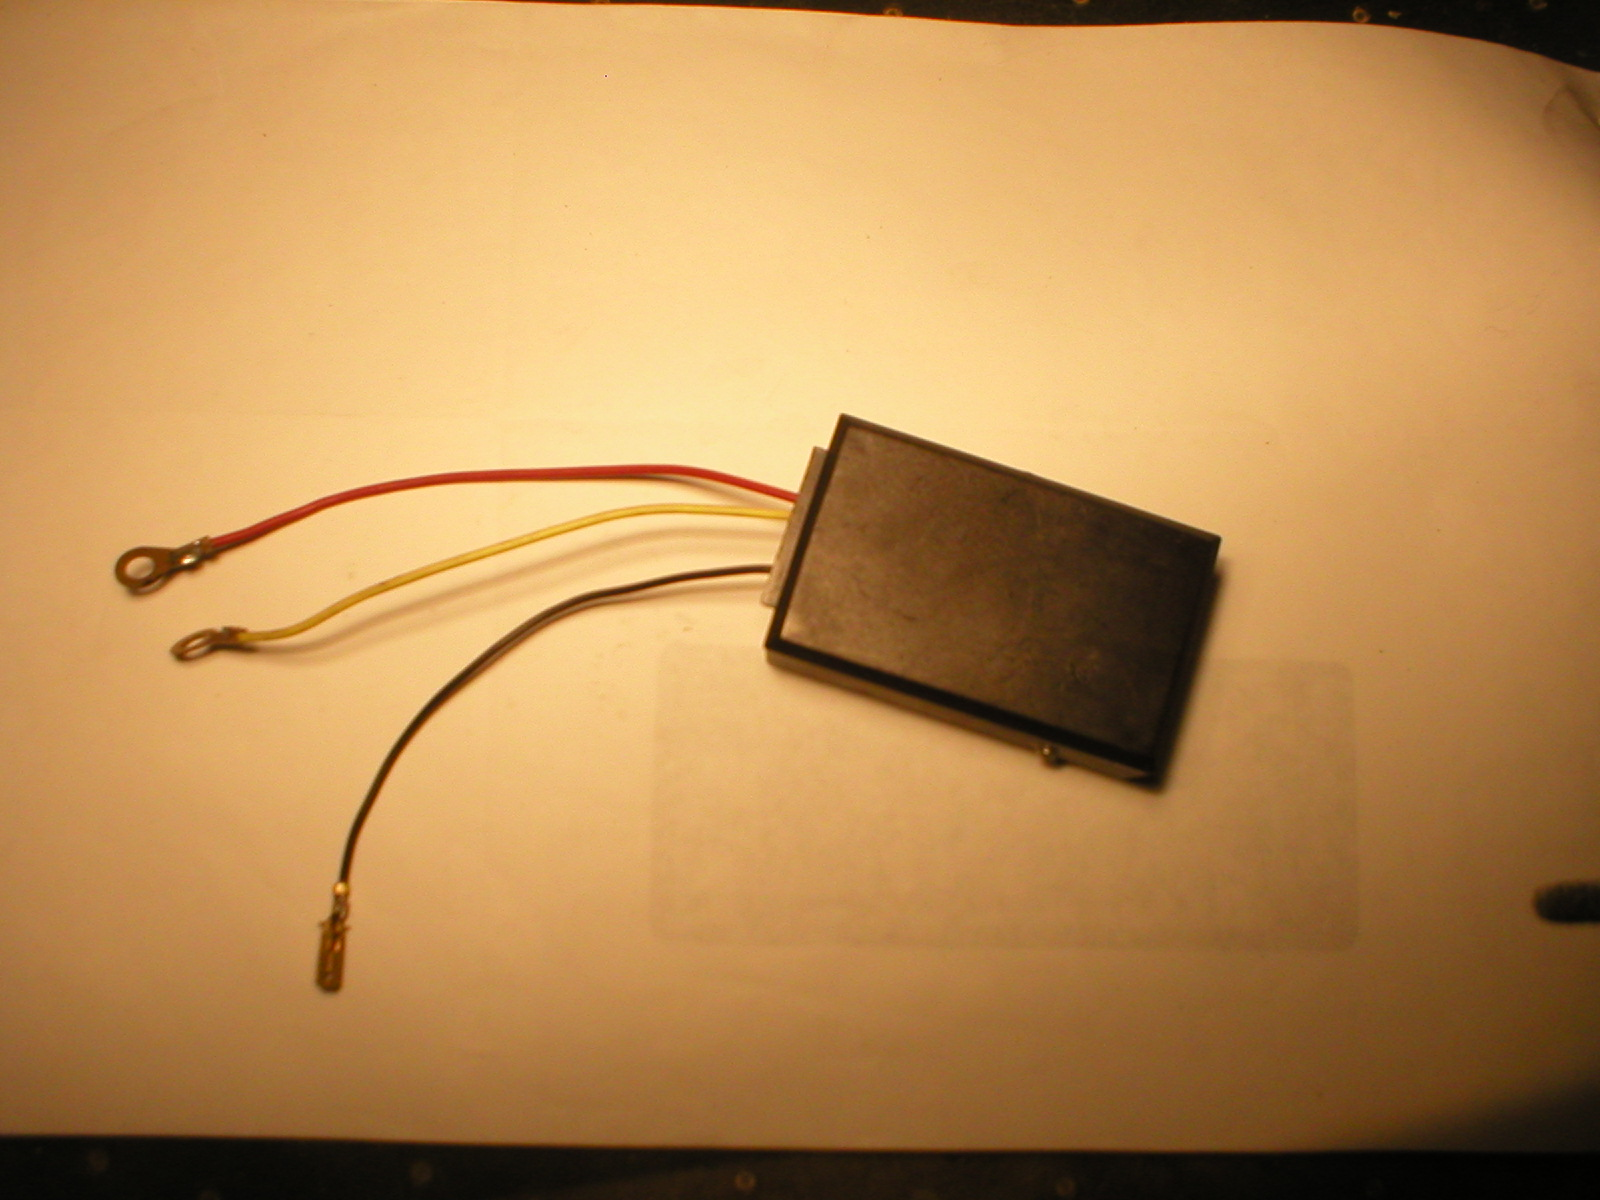 led wiring diagram controller driver wiring ct diagram controller 301a9 wiring ct diagram controller 301a9 best wiring library